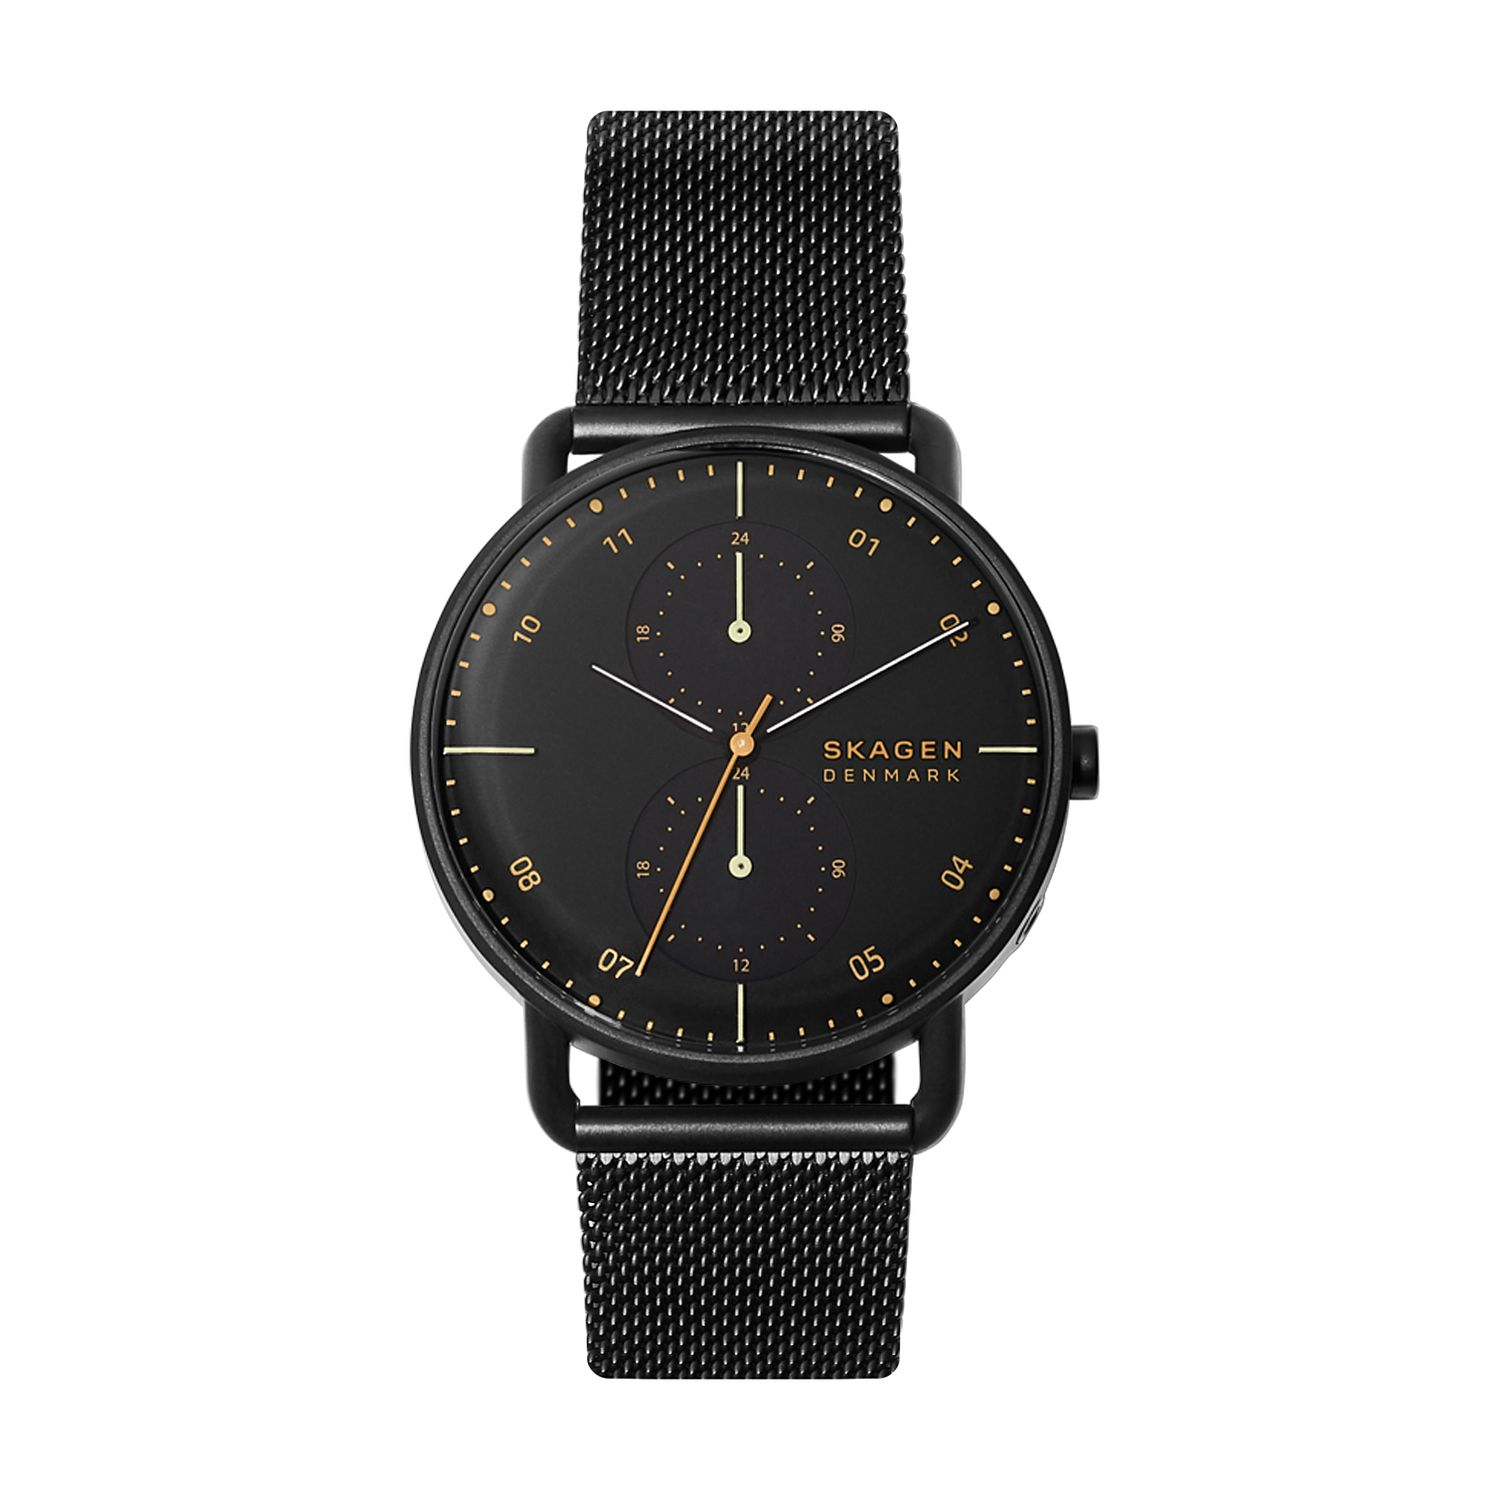 Skagen Horizont Men's Black Ip Mesh Bracelet Watch - Product number 4721195